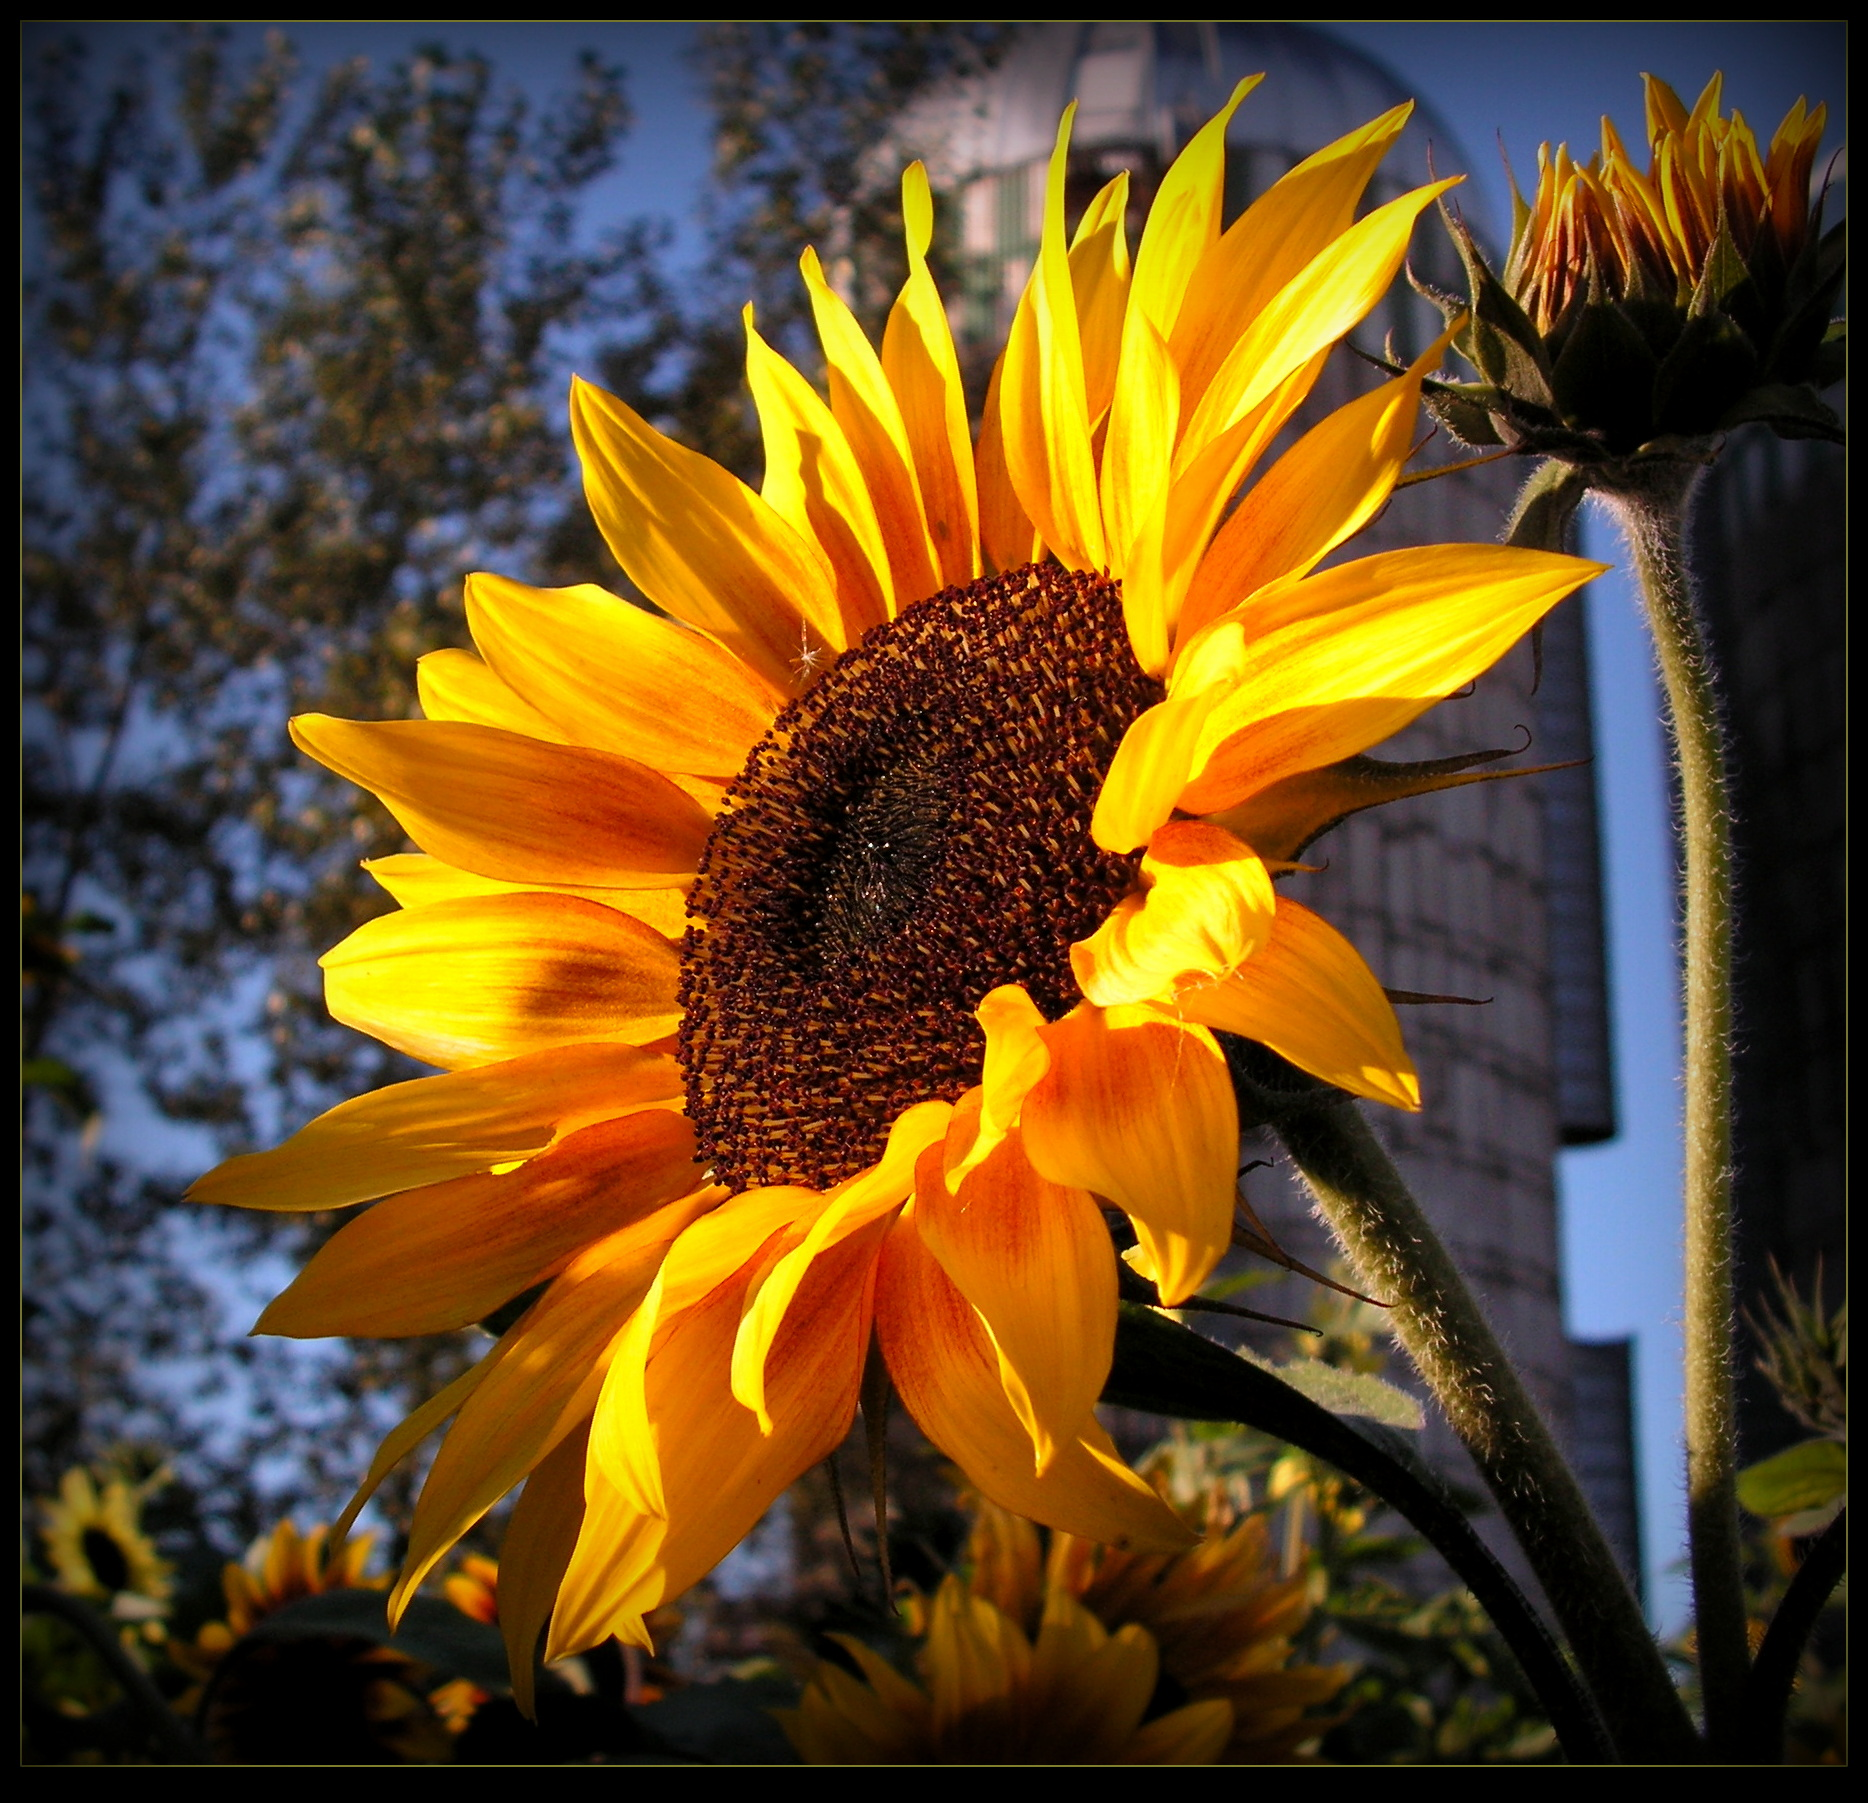 Joyful Sunflower by JocelyneR